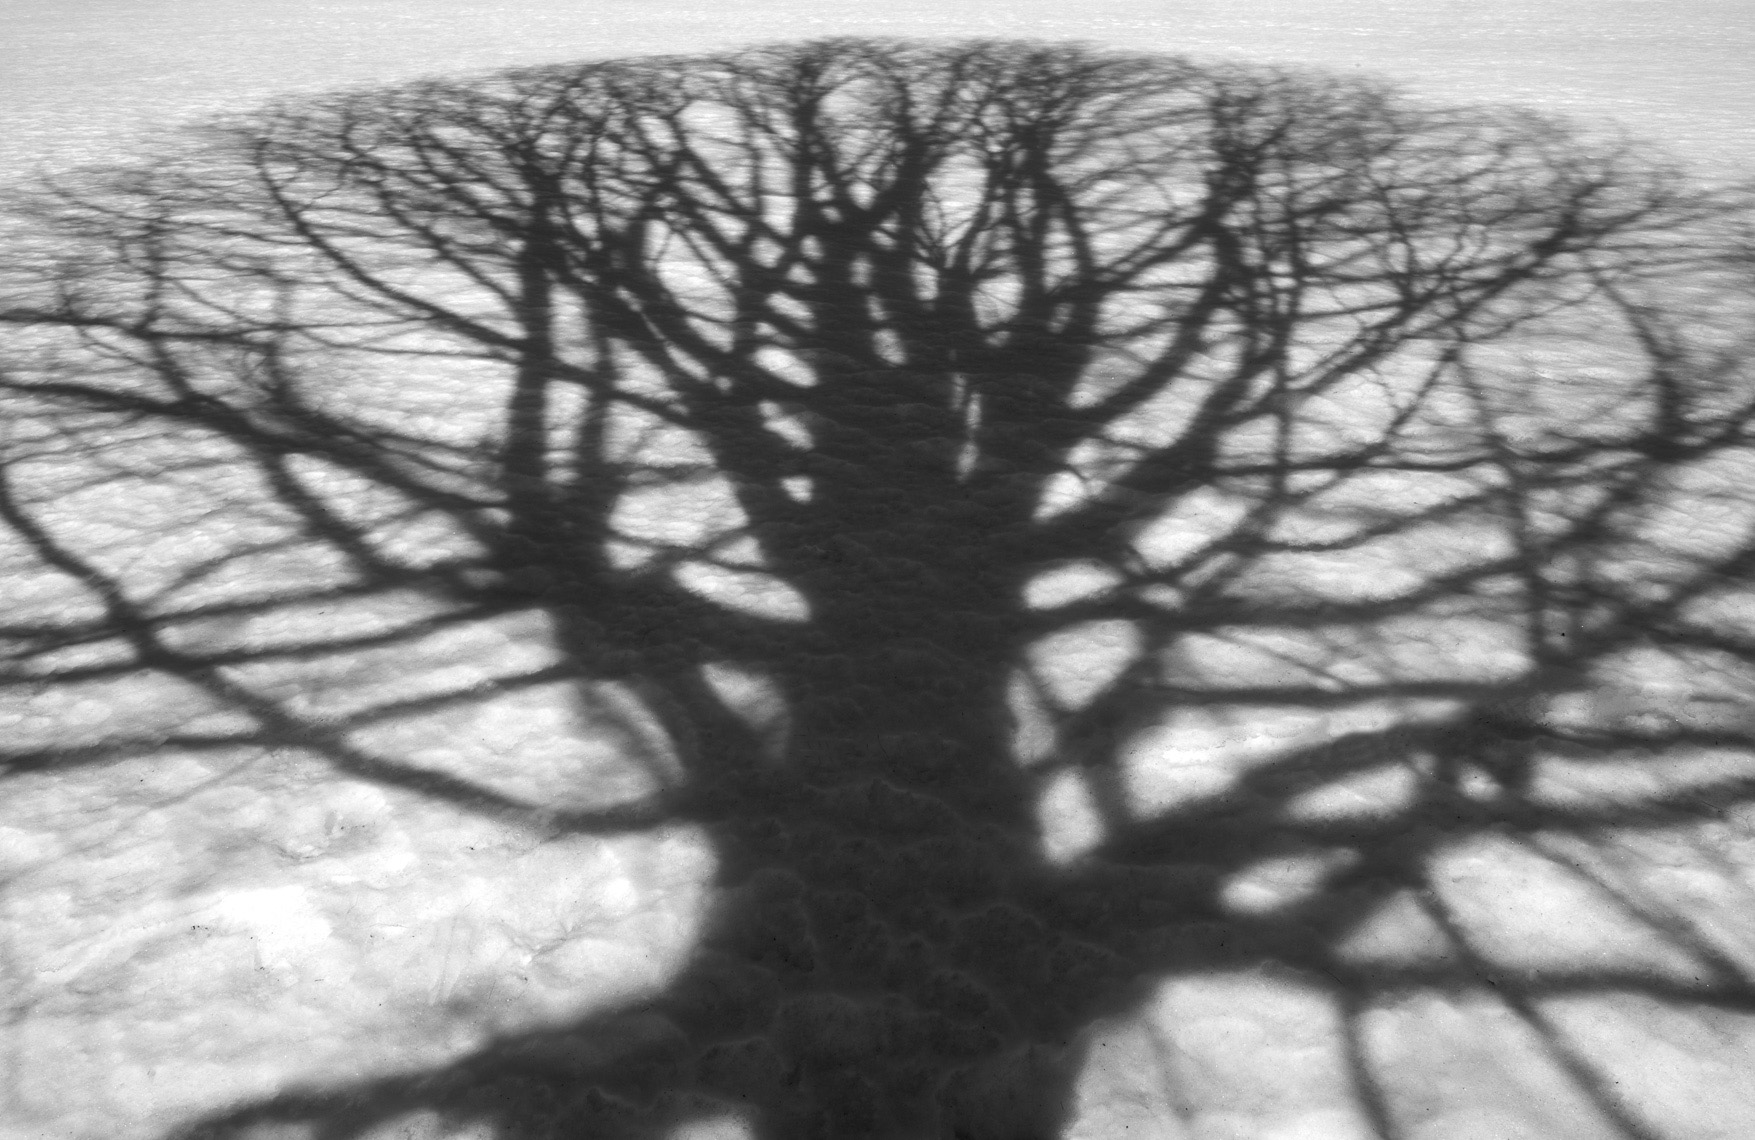 TreeShadow-3_Winter_Ipswich_3-2015